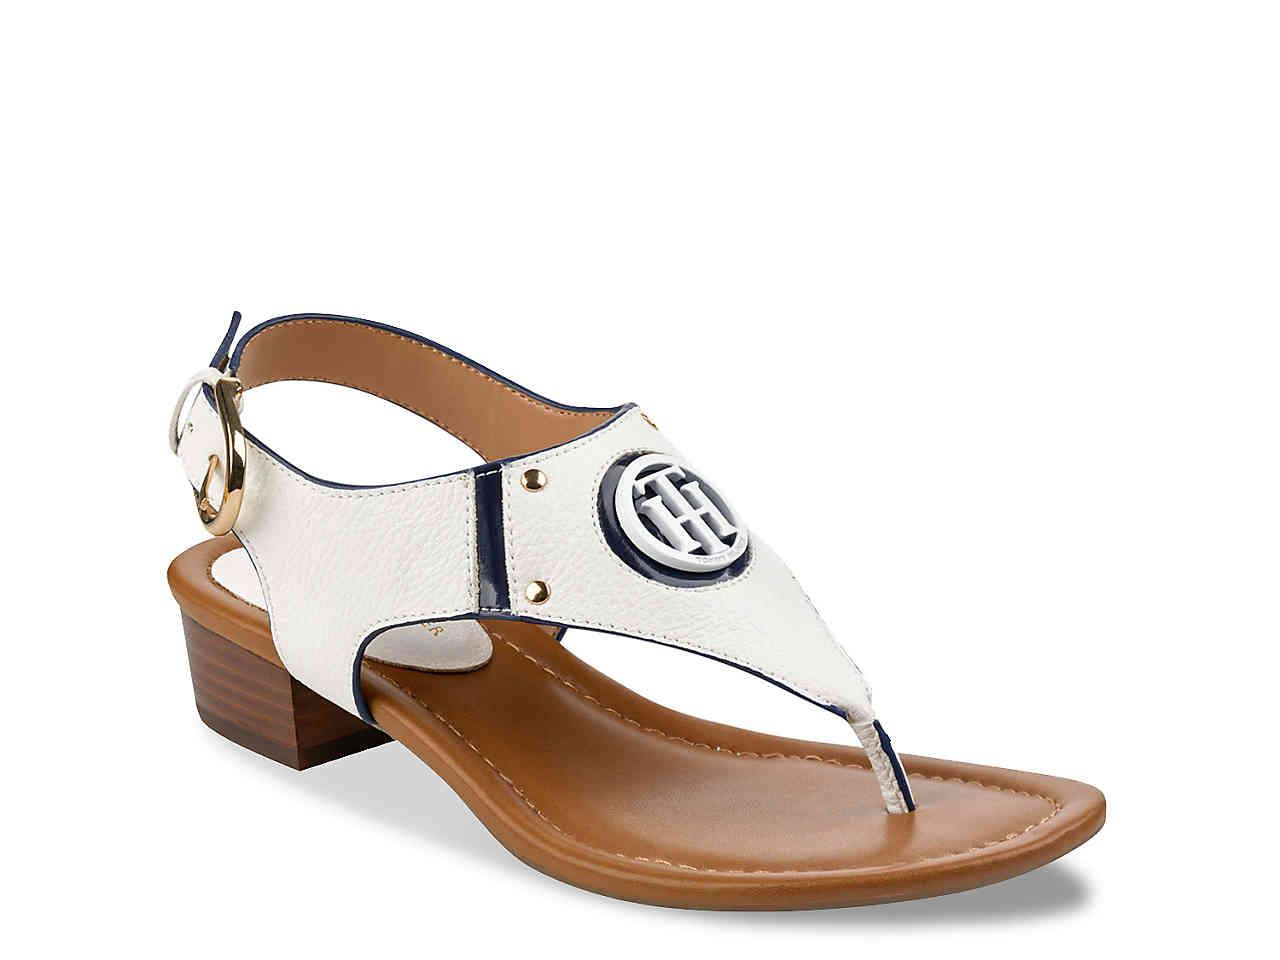 6ce52dbf40a8 Lyst - Tommy Hilfiger Kissi Sandal in White